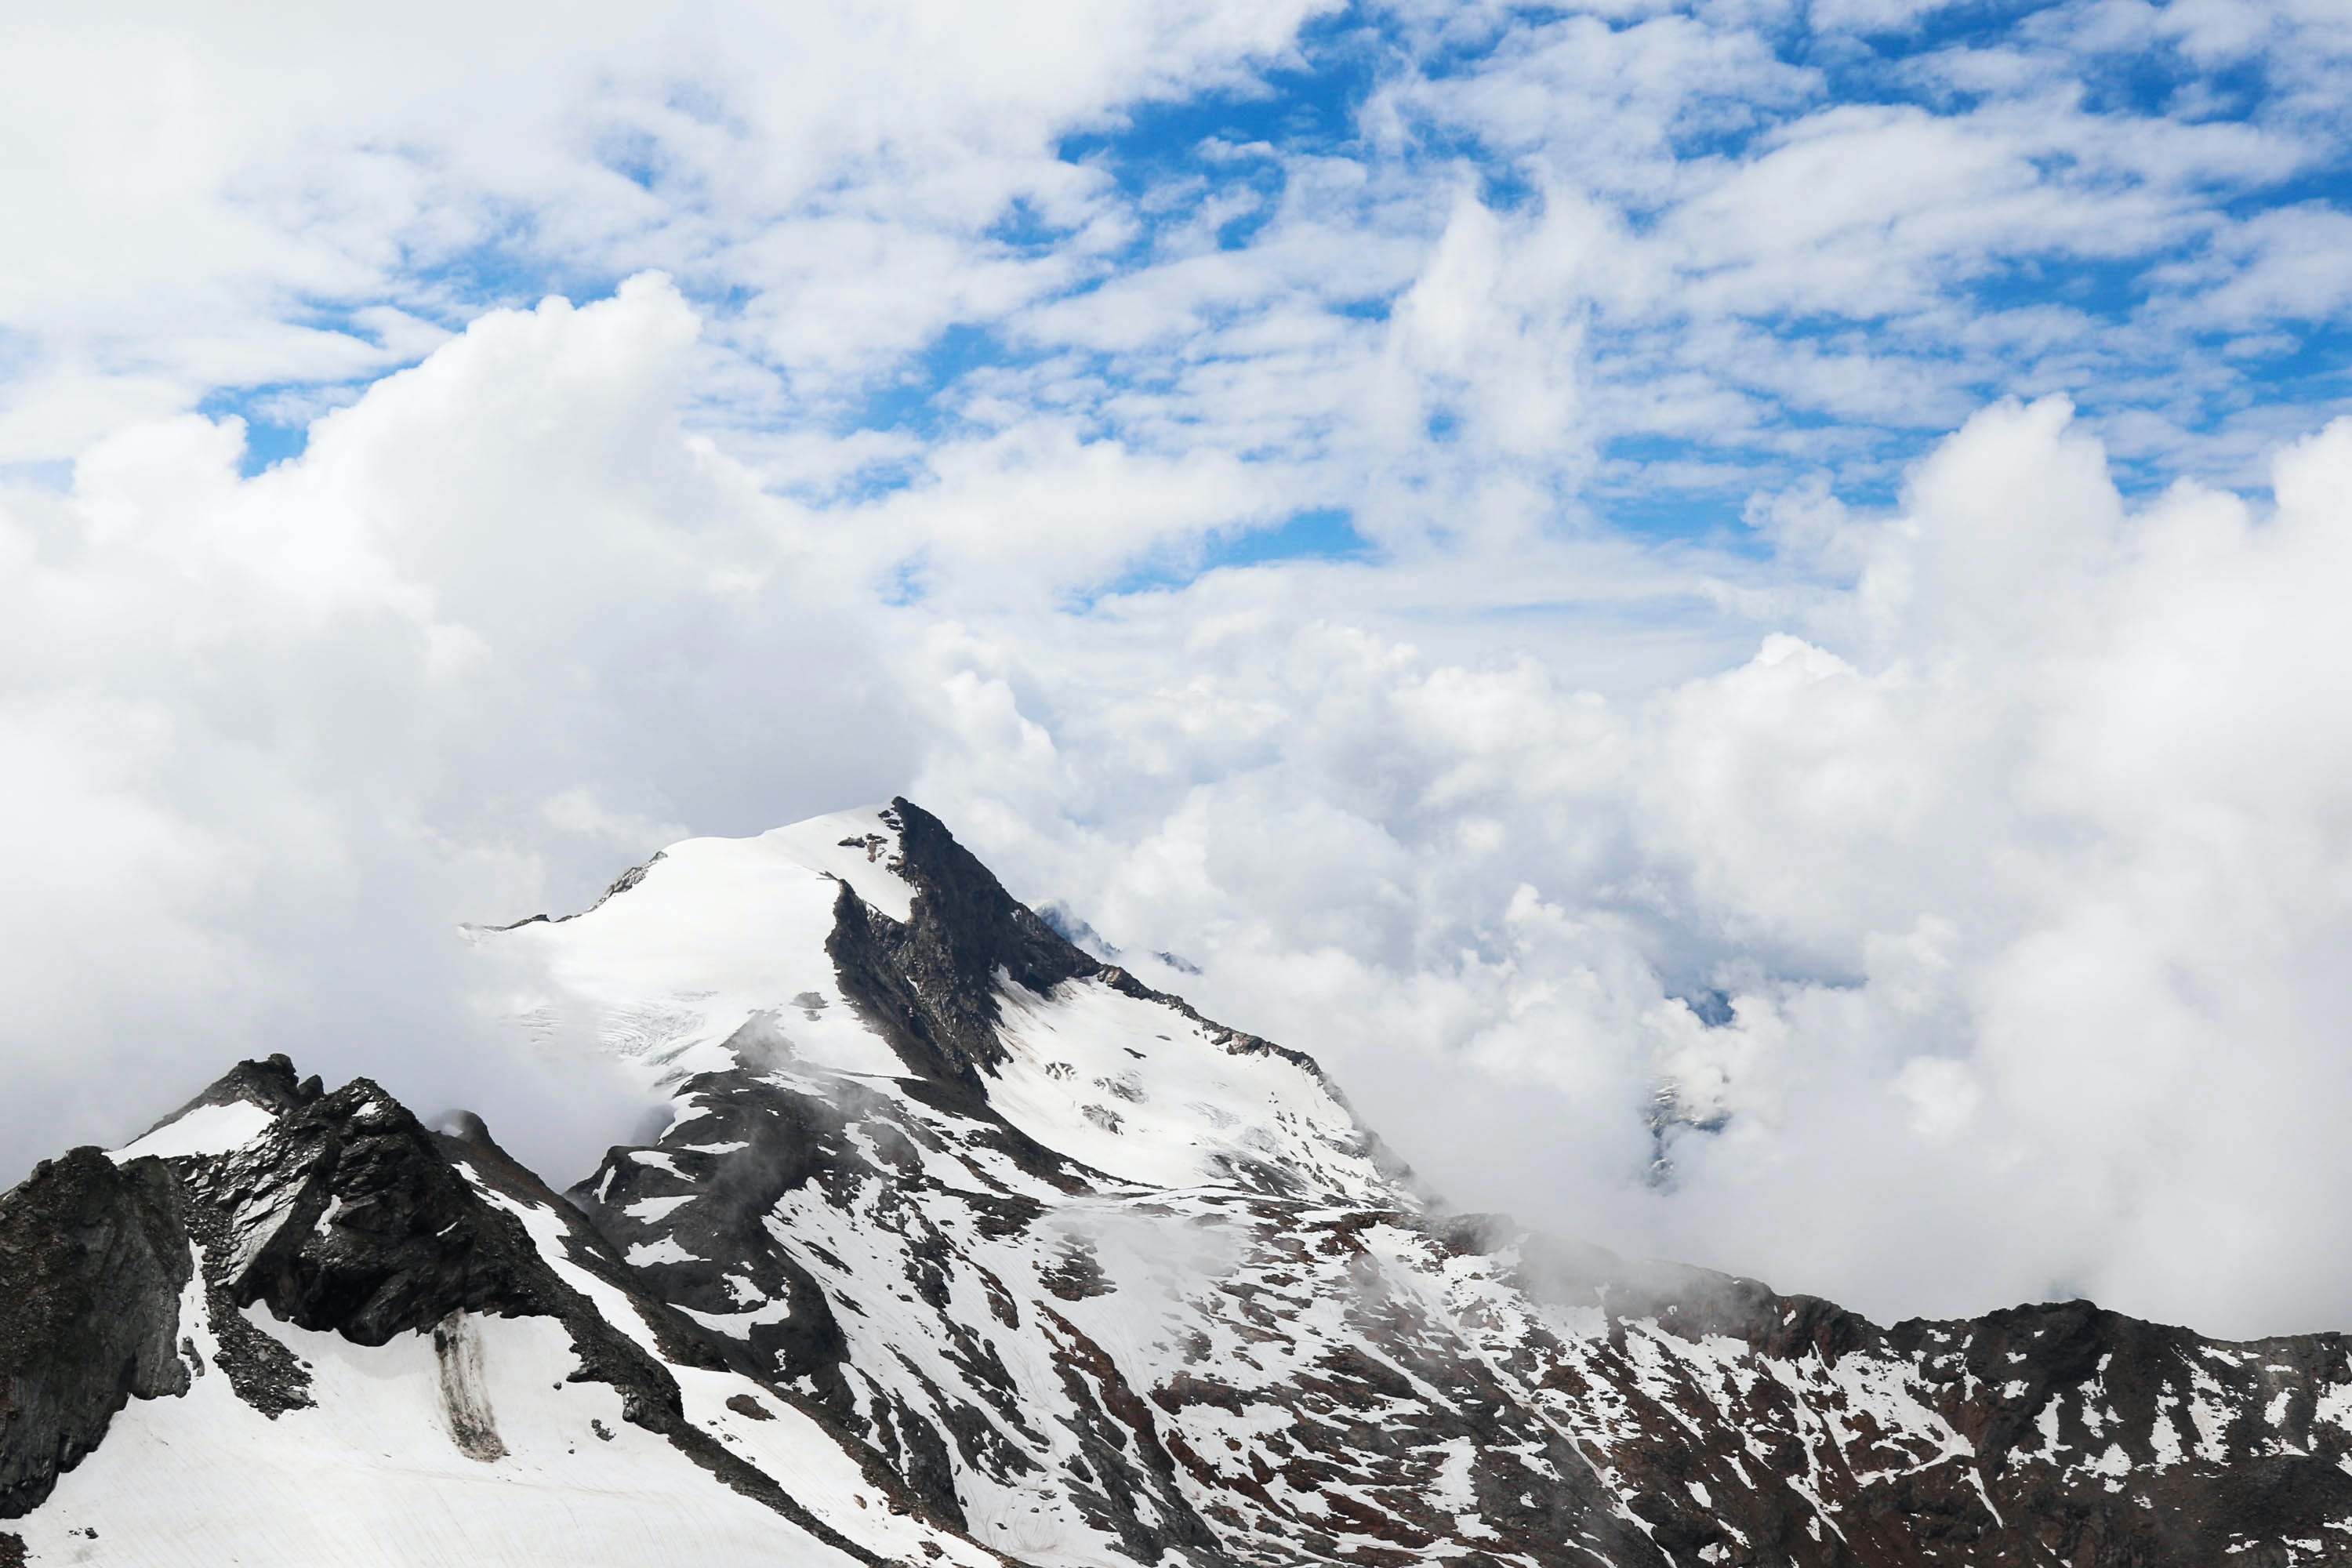 mountain covered with snow and white clouds during daytime